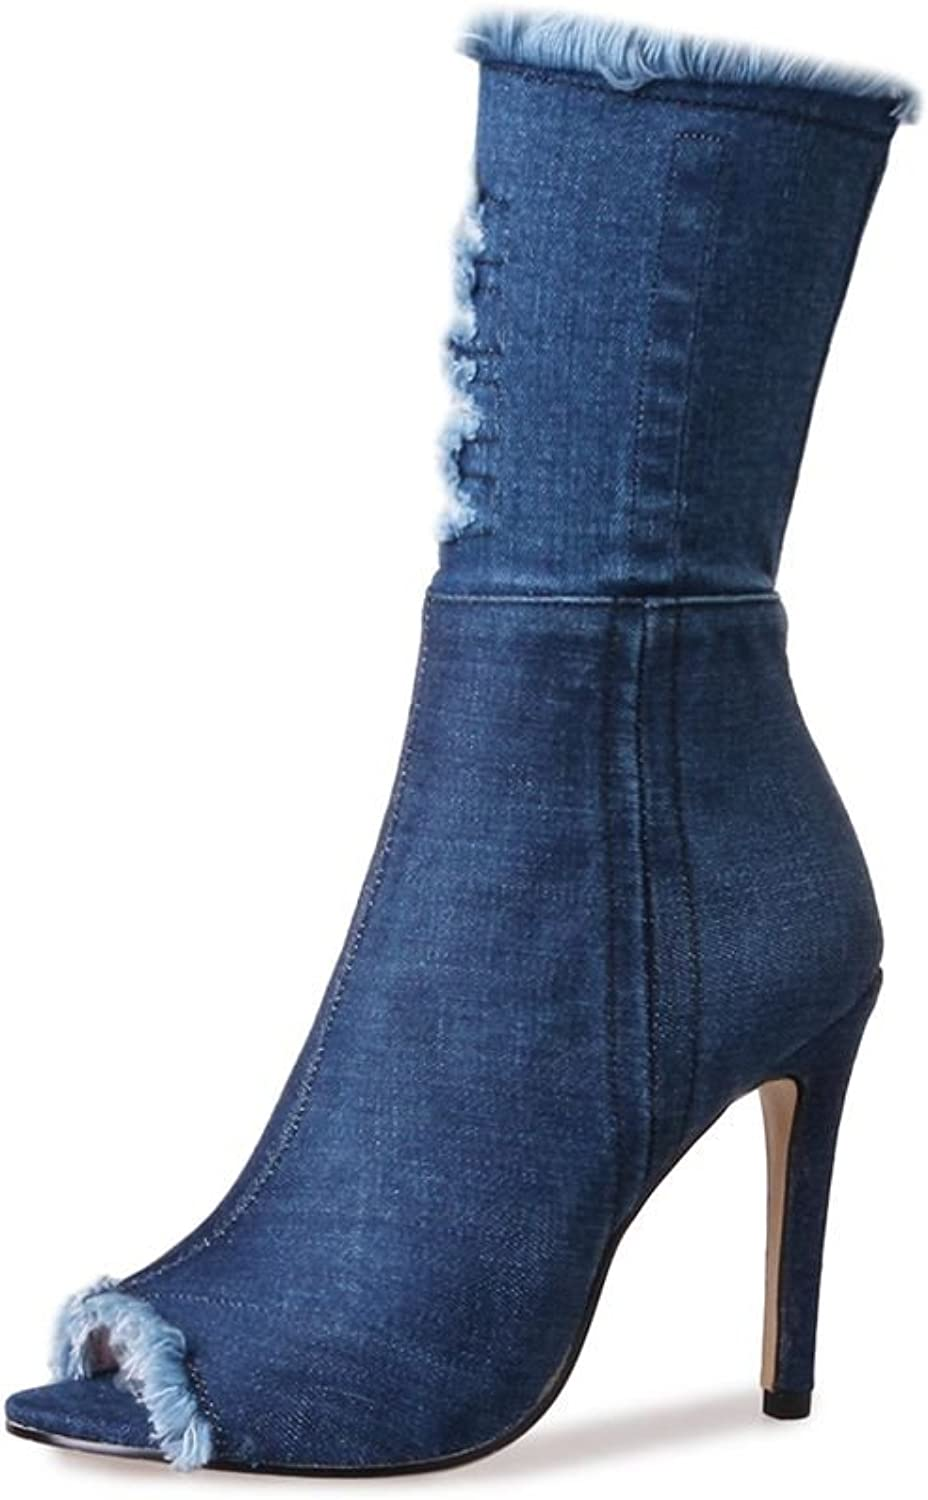 SaraIris Denim Boots Torn Holes Stilettoe Heels Peep-top for Women